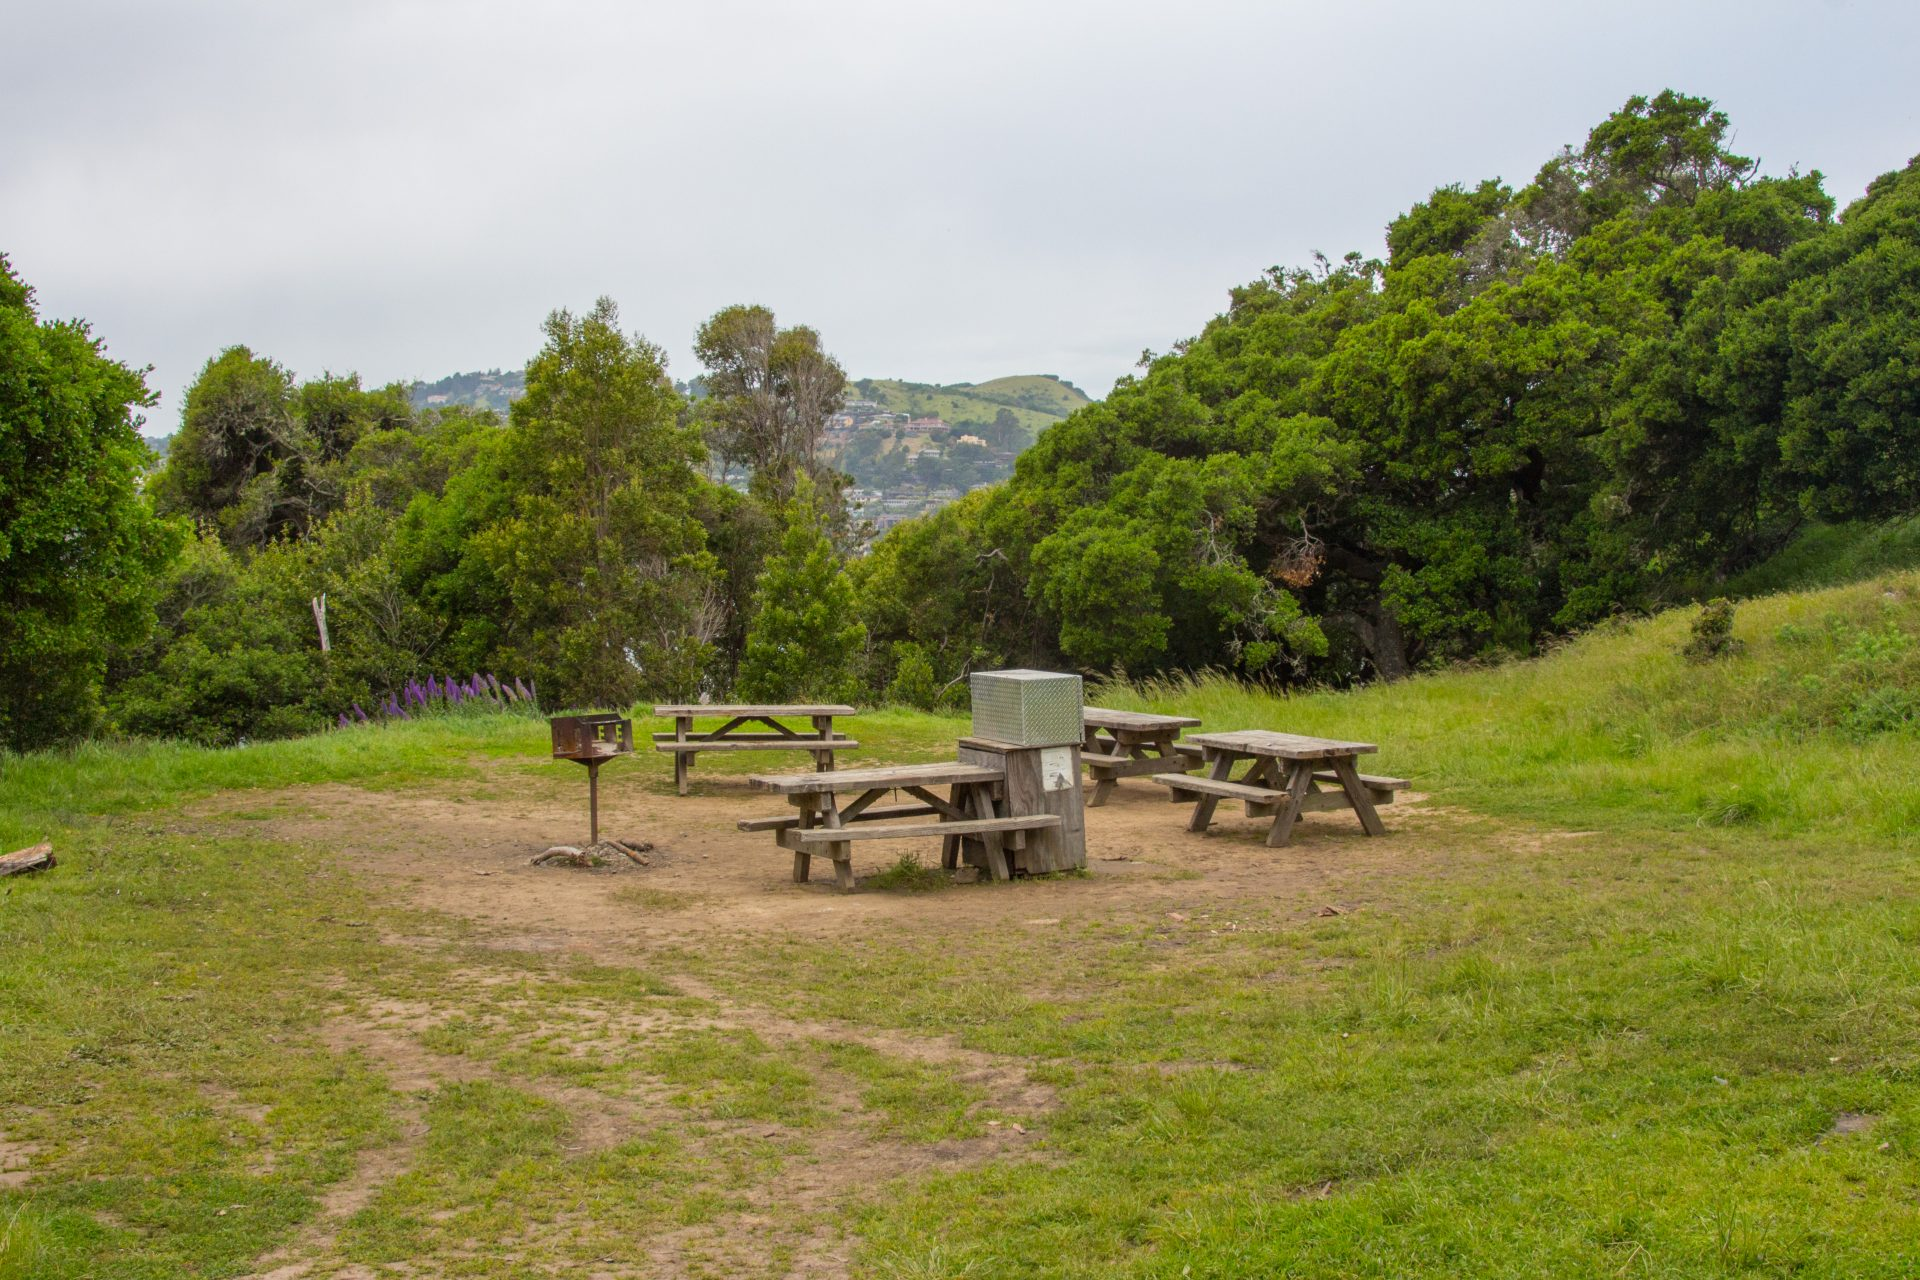 four picnic tables, barbecue, metal food cabinet